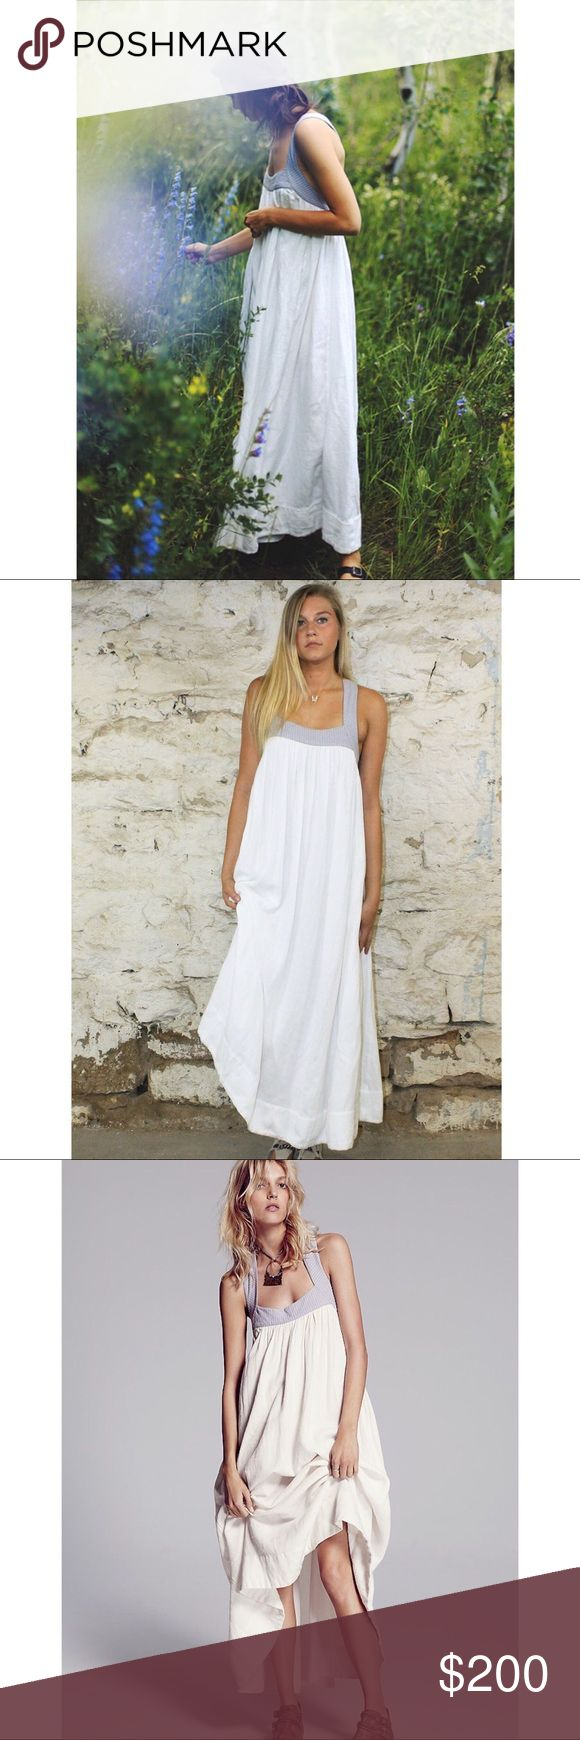 Free People Softly Structured White Maxi Dress Details:  Gauzy linen structured maxi dress with hip pockets. Contrast trim with a low adjustable back and crisscross straps.  Care/Import  Machine Wash Cold  Import  Measurements for size Small Bust: 46.25 in Length: 48.75 in  Smoke free & pet free home  Tags: boho wedding, wedding dress, bridal dress, maternity dress, beach dress Free People Dresses Maxi